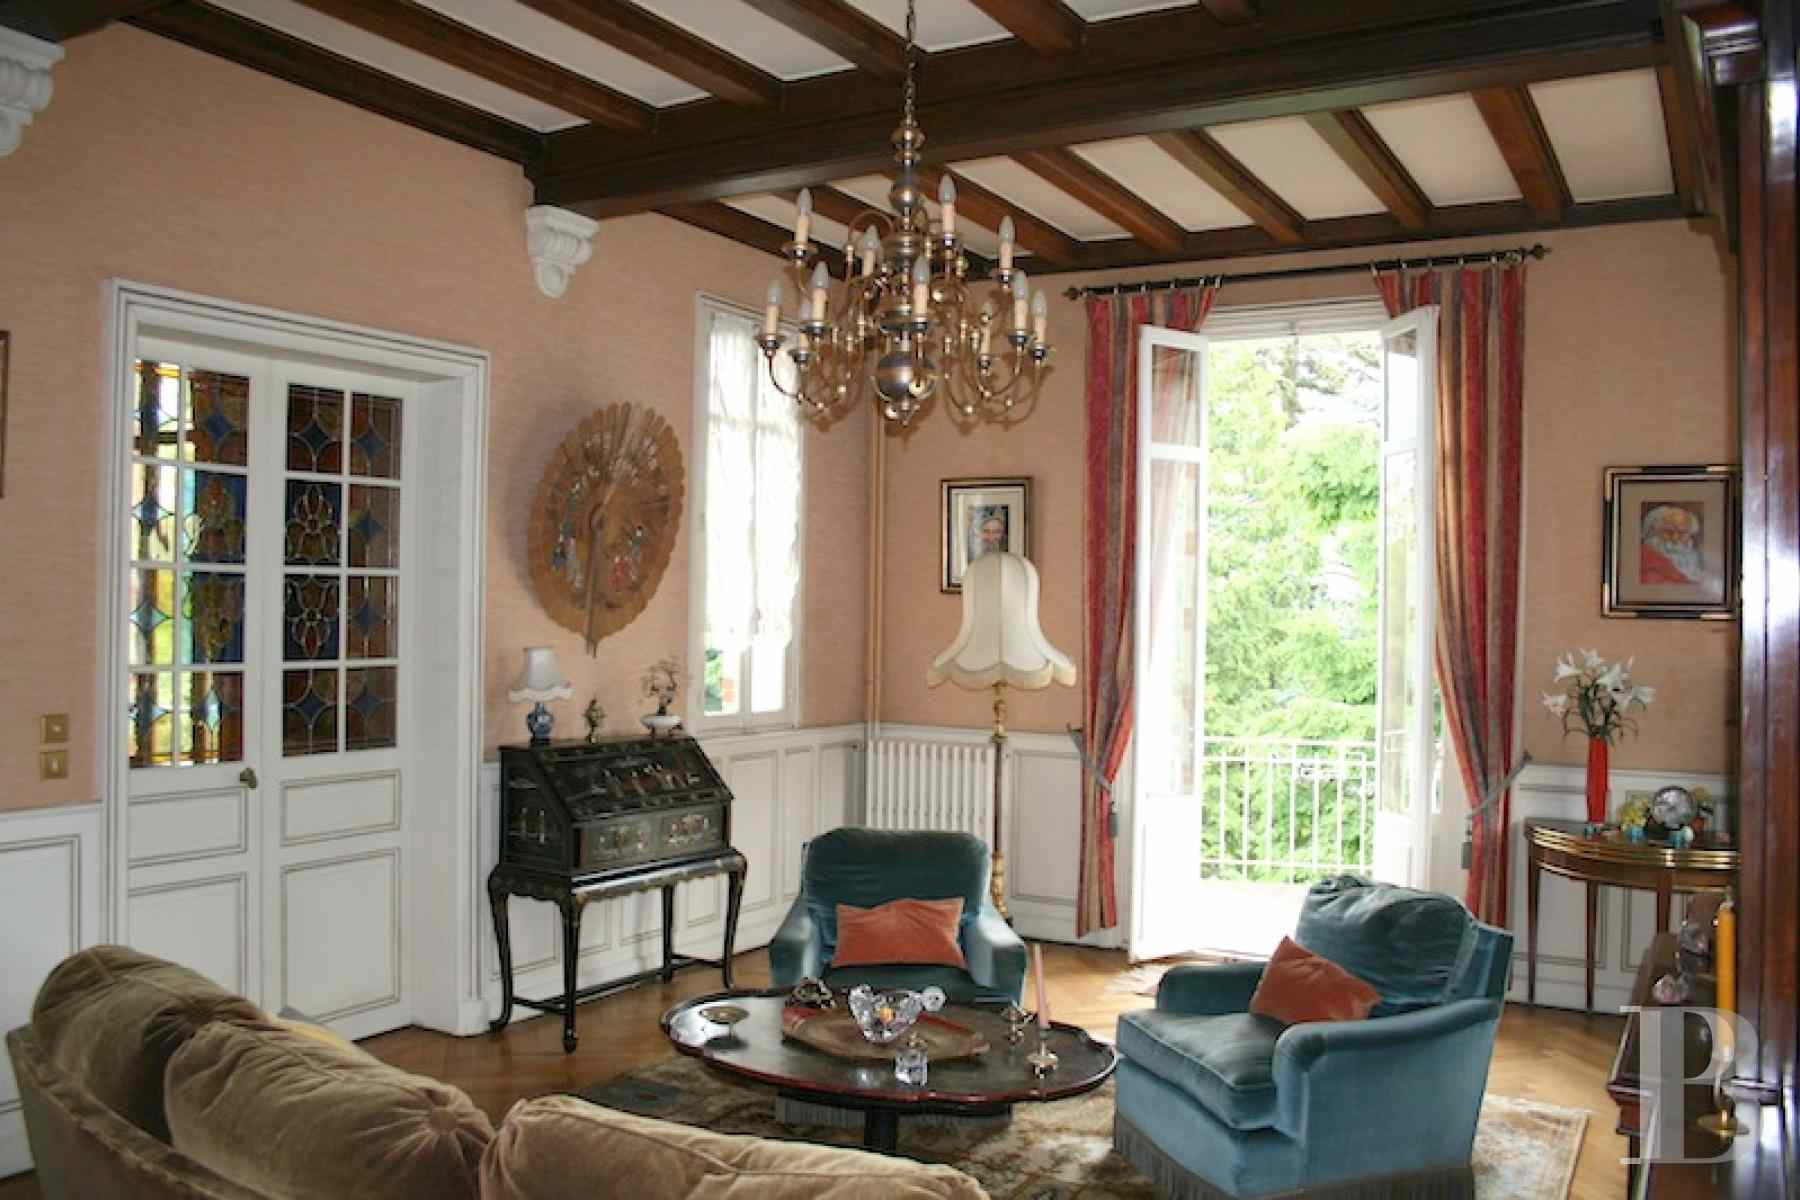 property for sale France center val de loire tours amboise - 7 zoom